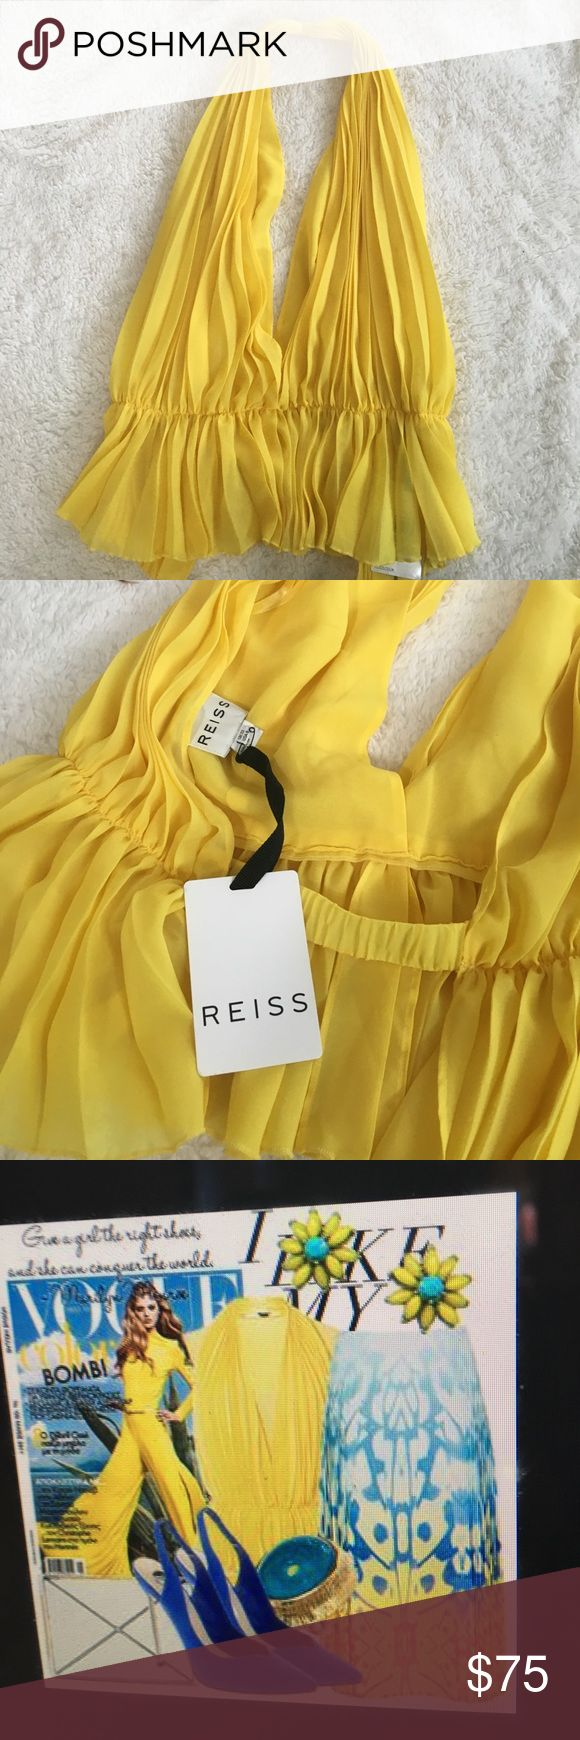 Reiss Esmeralda sexy halter top Reiss halter top , in a bold shade of sunshine yellow, in sheer multi layered pleats with a deep v front, it has a camisole base and a nipped waist which flares at the hips to an amazing peplum hem, style secure at the bottom of the back with a simple hook and eye fastening.  Brand-new with tags's retails for $150. Reiss Tops